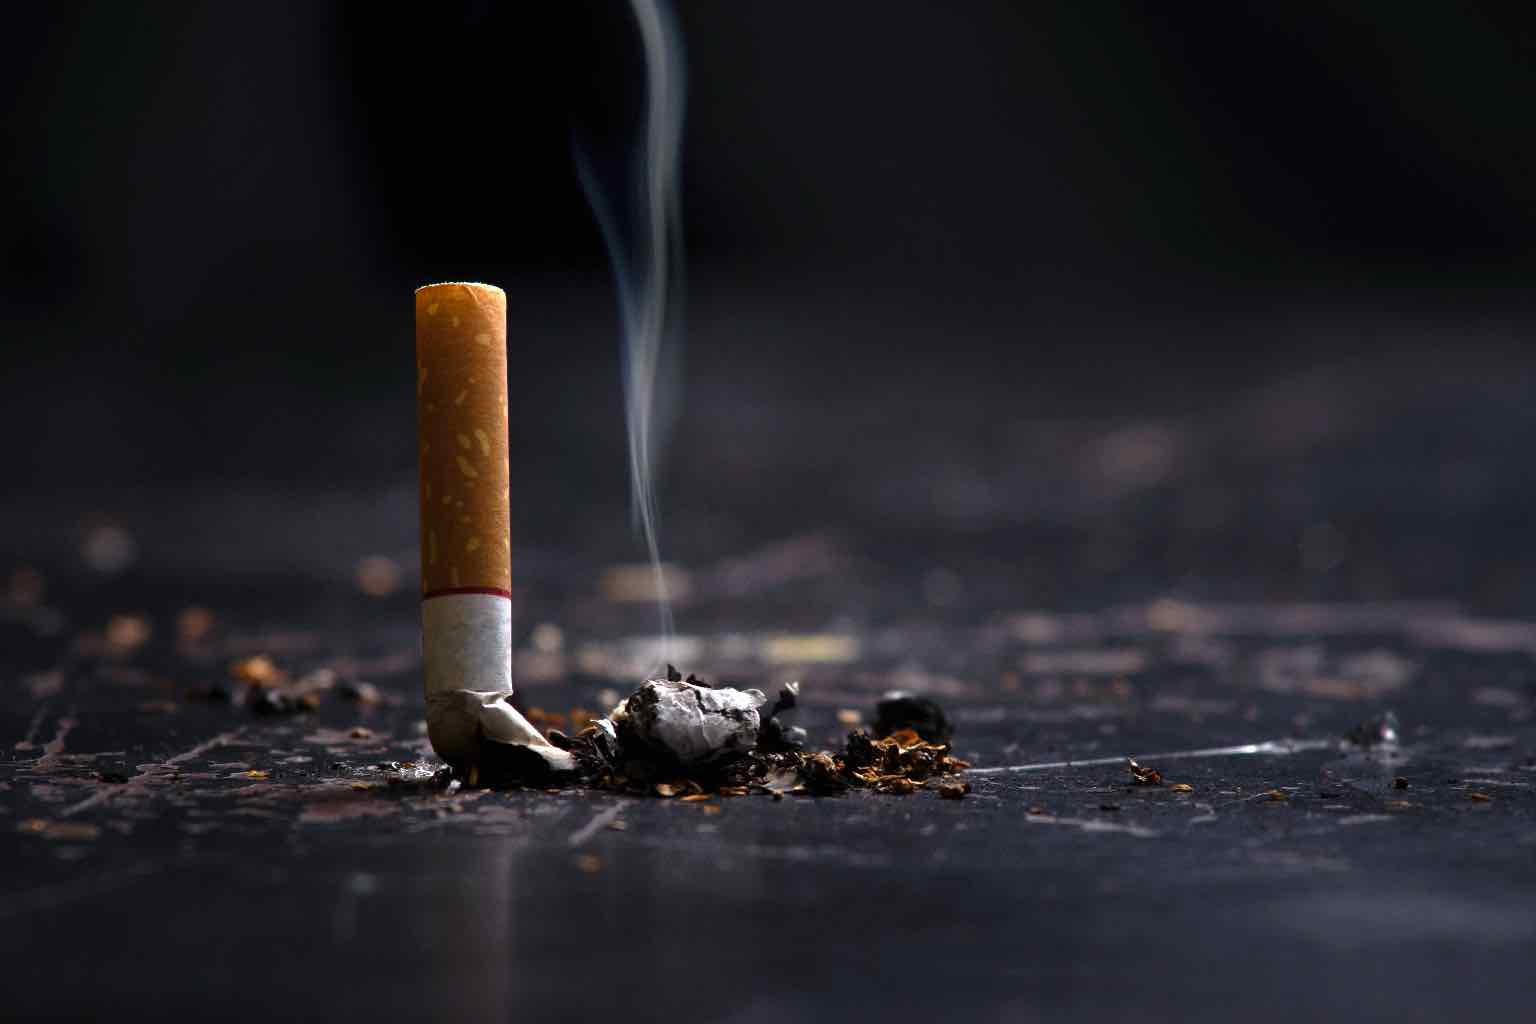 A stubbed cigarette with smoke rising from the ash